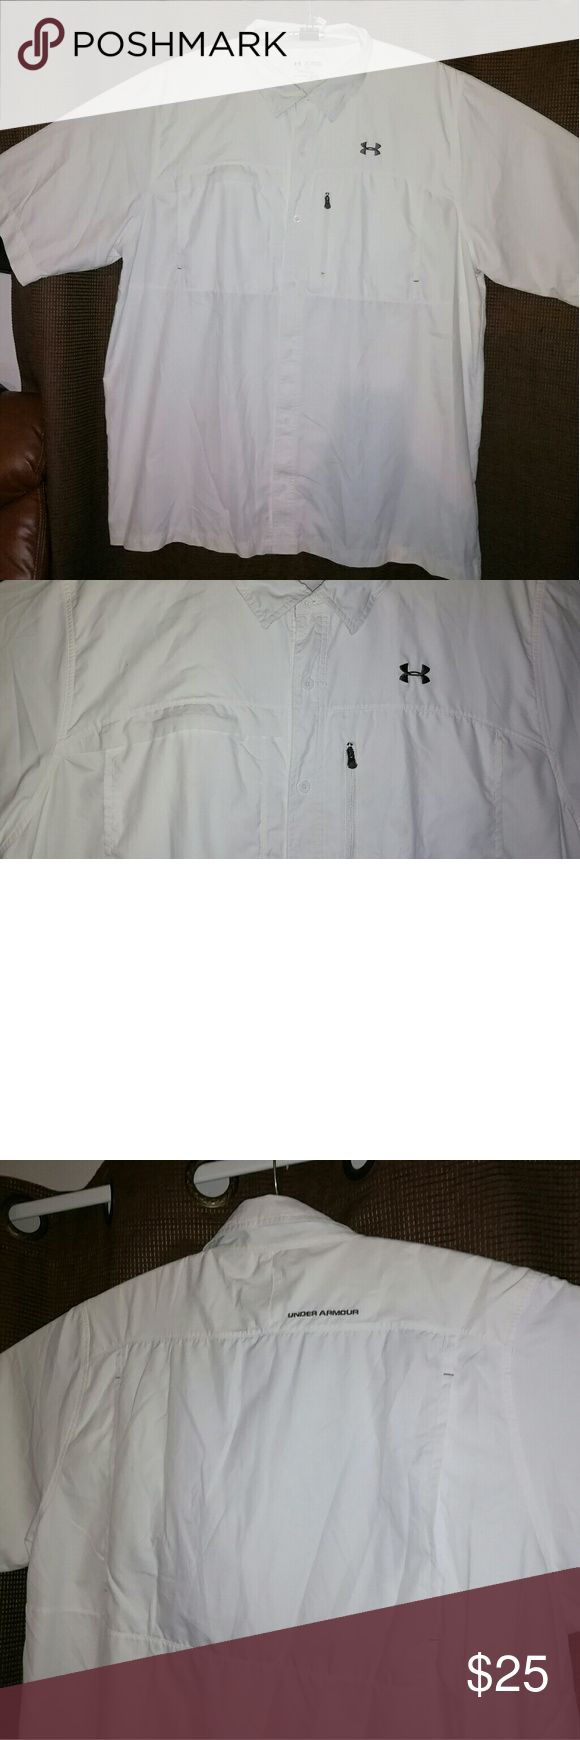 3xl-Under Armour Men's Short Sleeve Fishing Shirt White gray logos. Favorite shirt.Used but loved. Like new. Feels great in a breezy day. No rips or stains. ?All offers will be considered. Please post any questions or comments.Will reply asap. Under Armour Shirts Casual Button Down Shirts